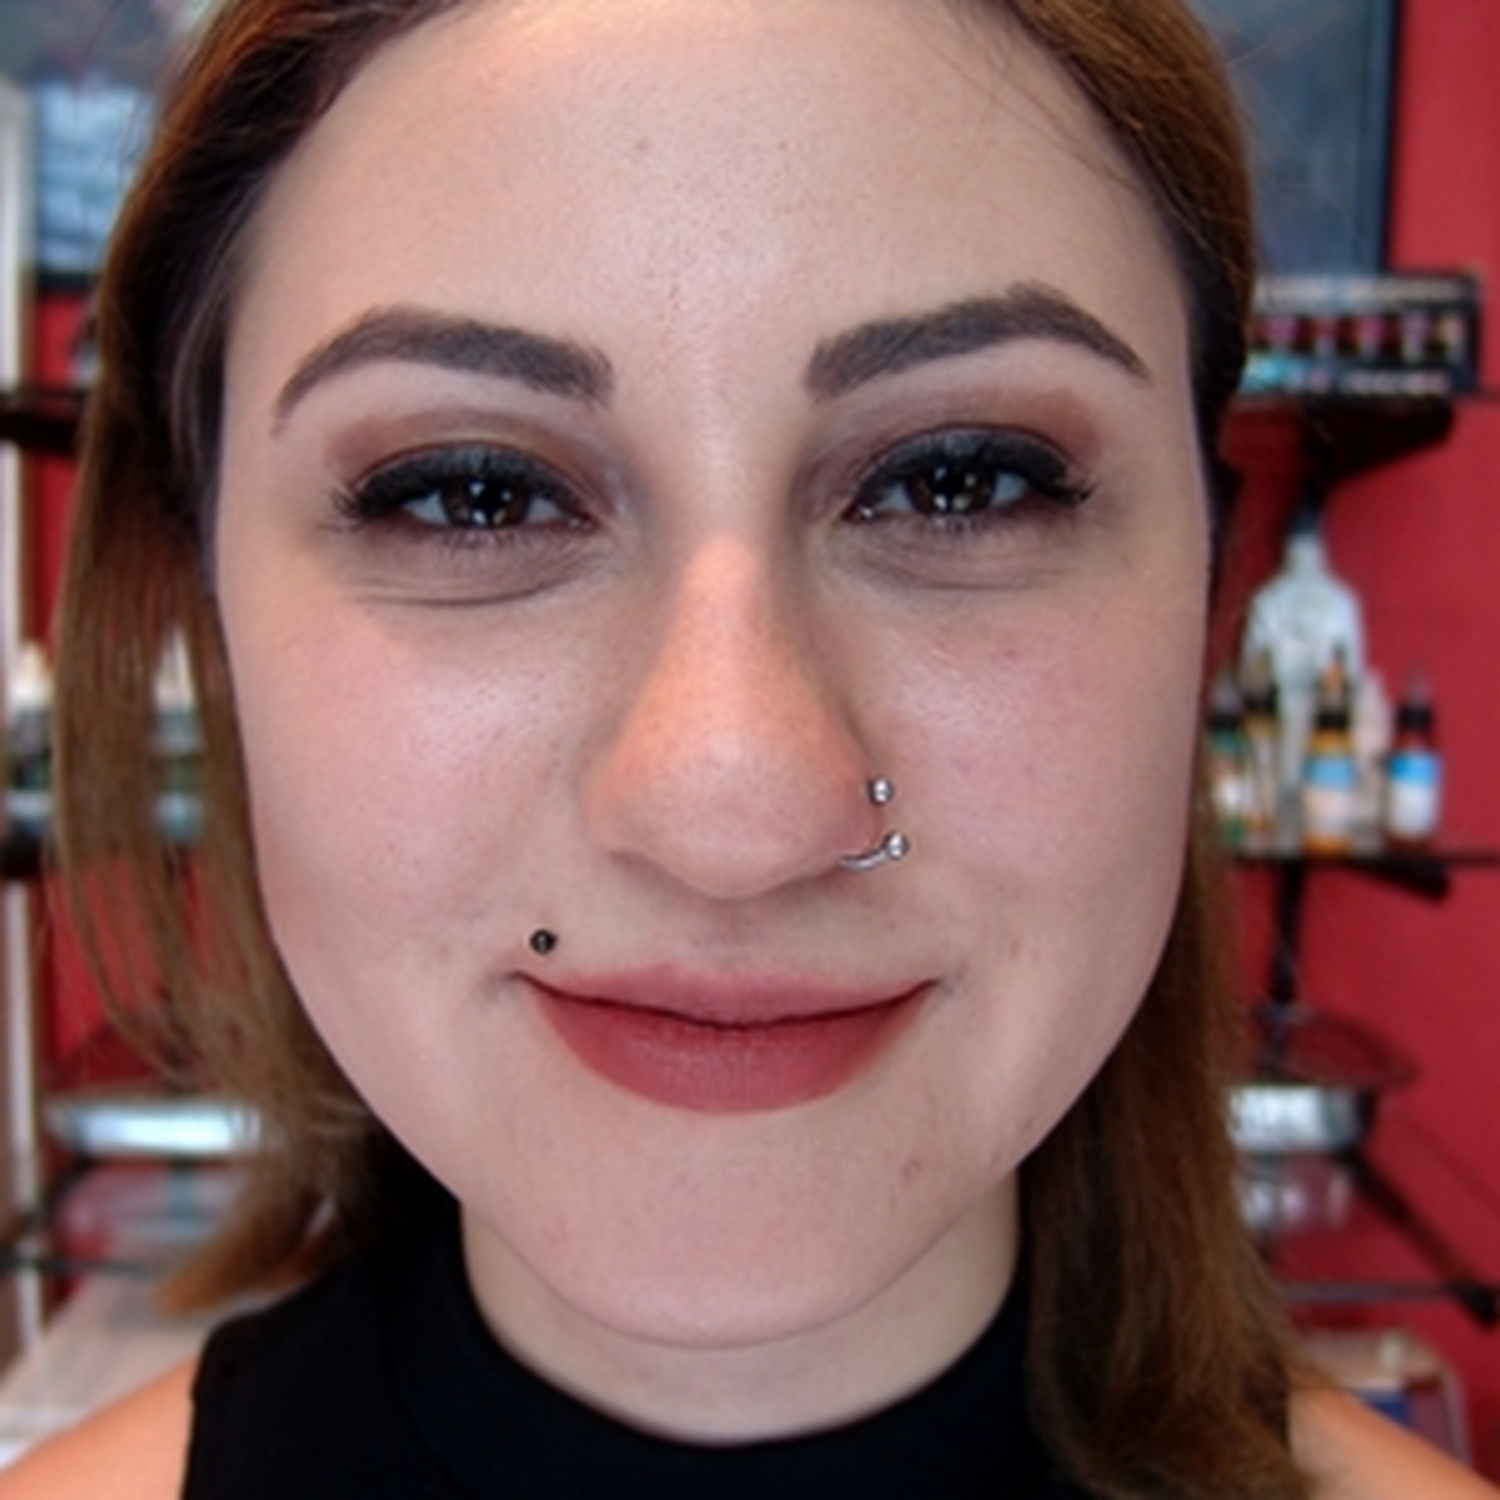 smiley,dudak,piercing,besiktas